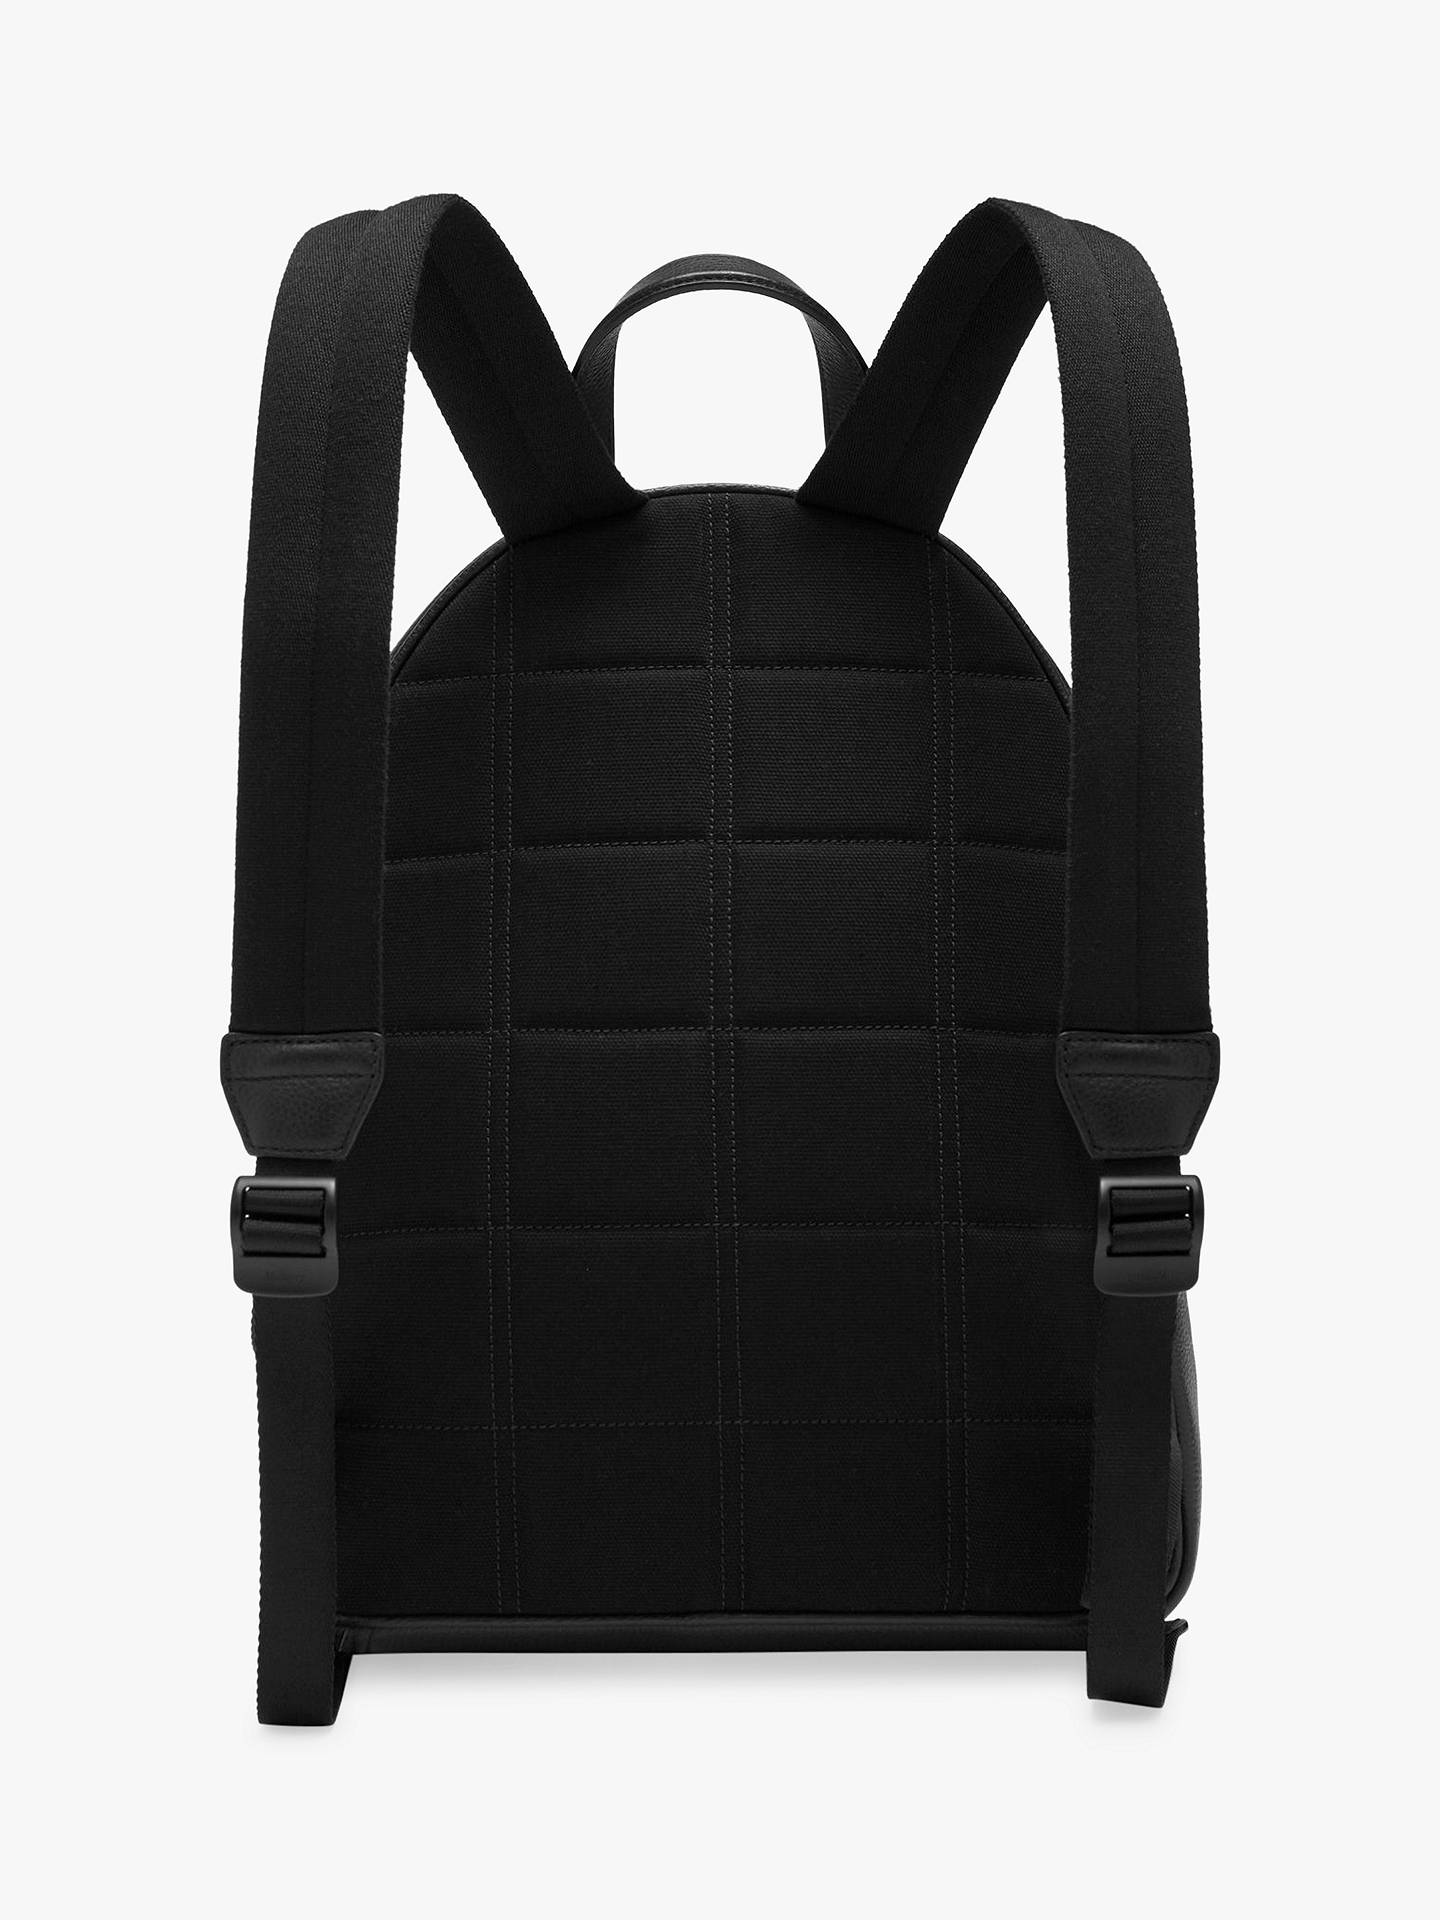 BuyMulberry Small Classic Grain Leather Zipped Backpack, Black Online at johnlewis.com